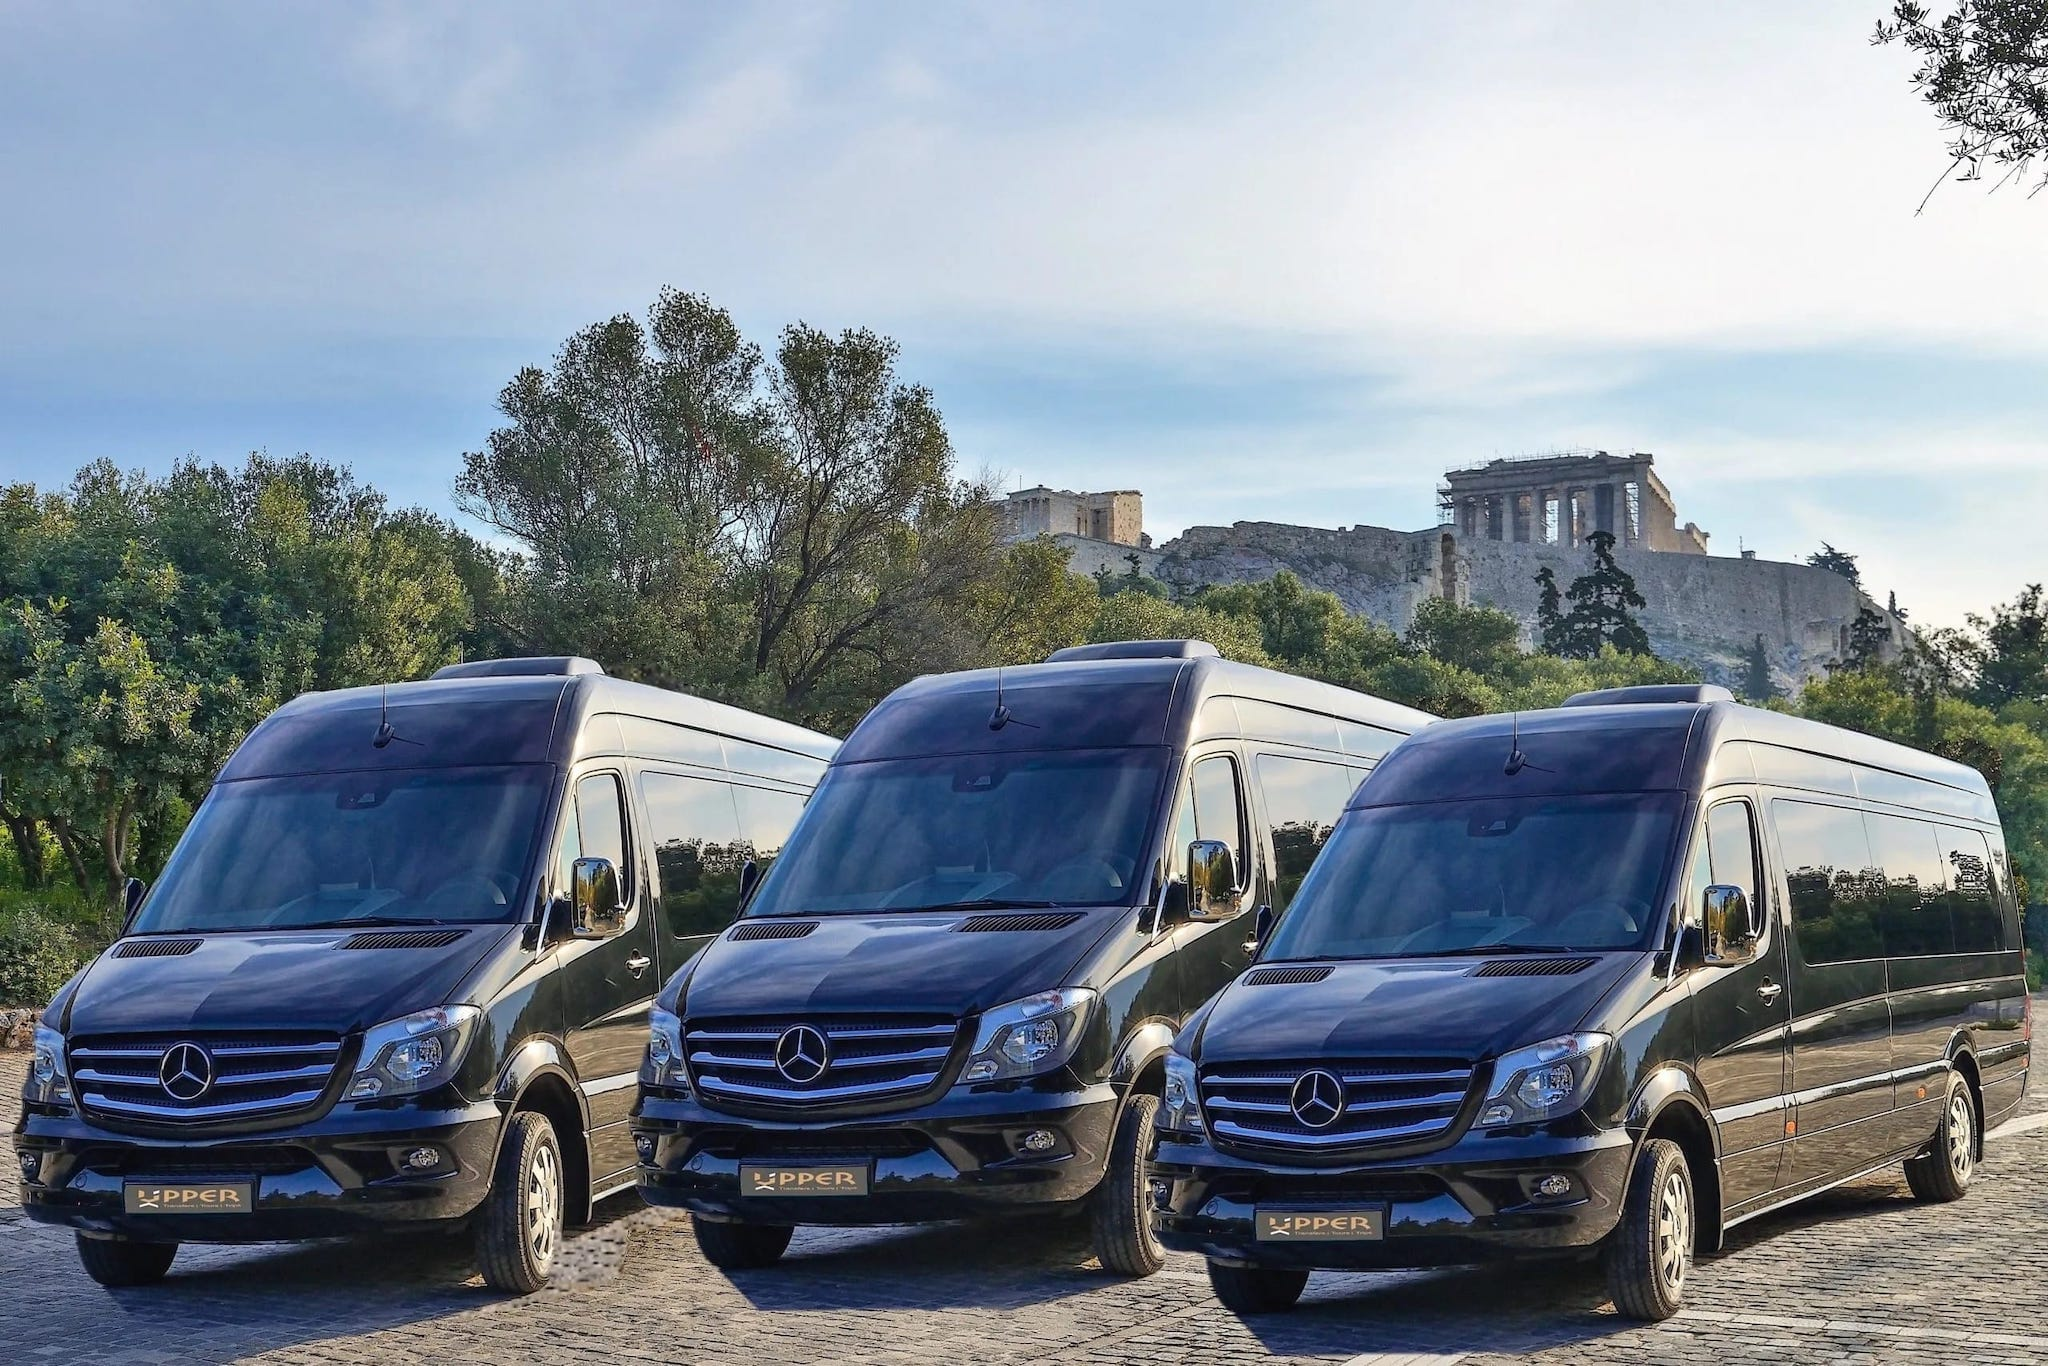 Mercedes Black VIP MiniBuses fleet parkerd under the Parthenon in Acropolis Hill Athens Greece